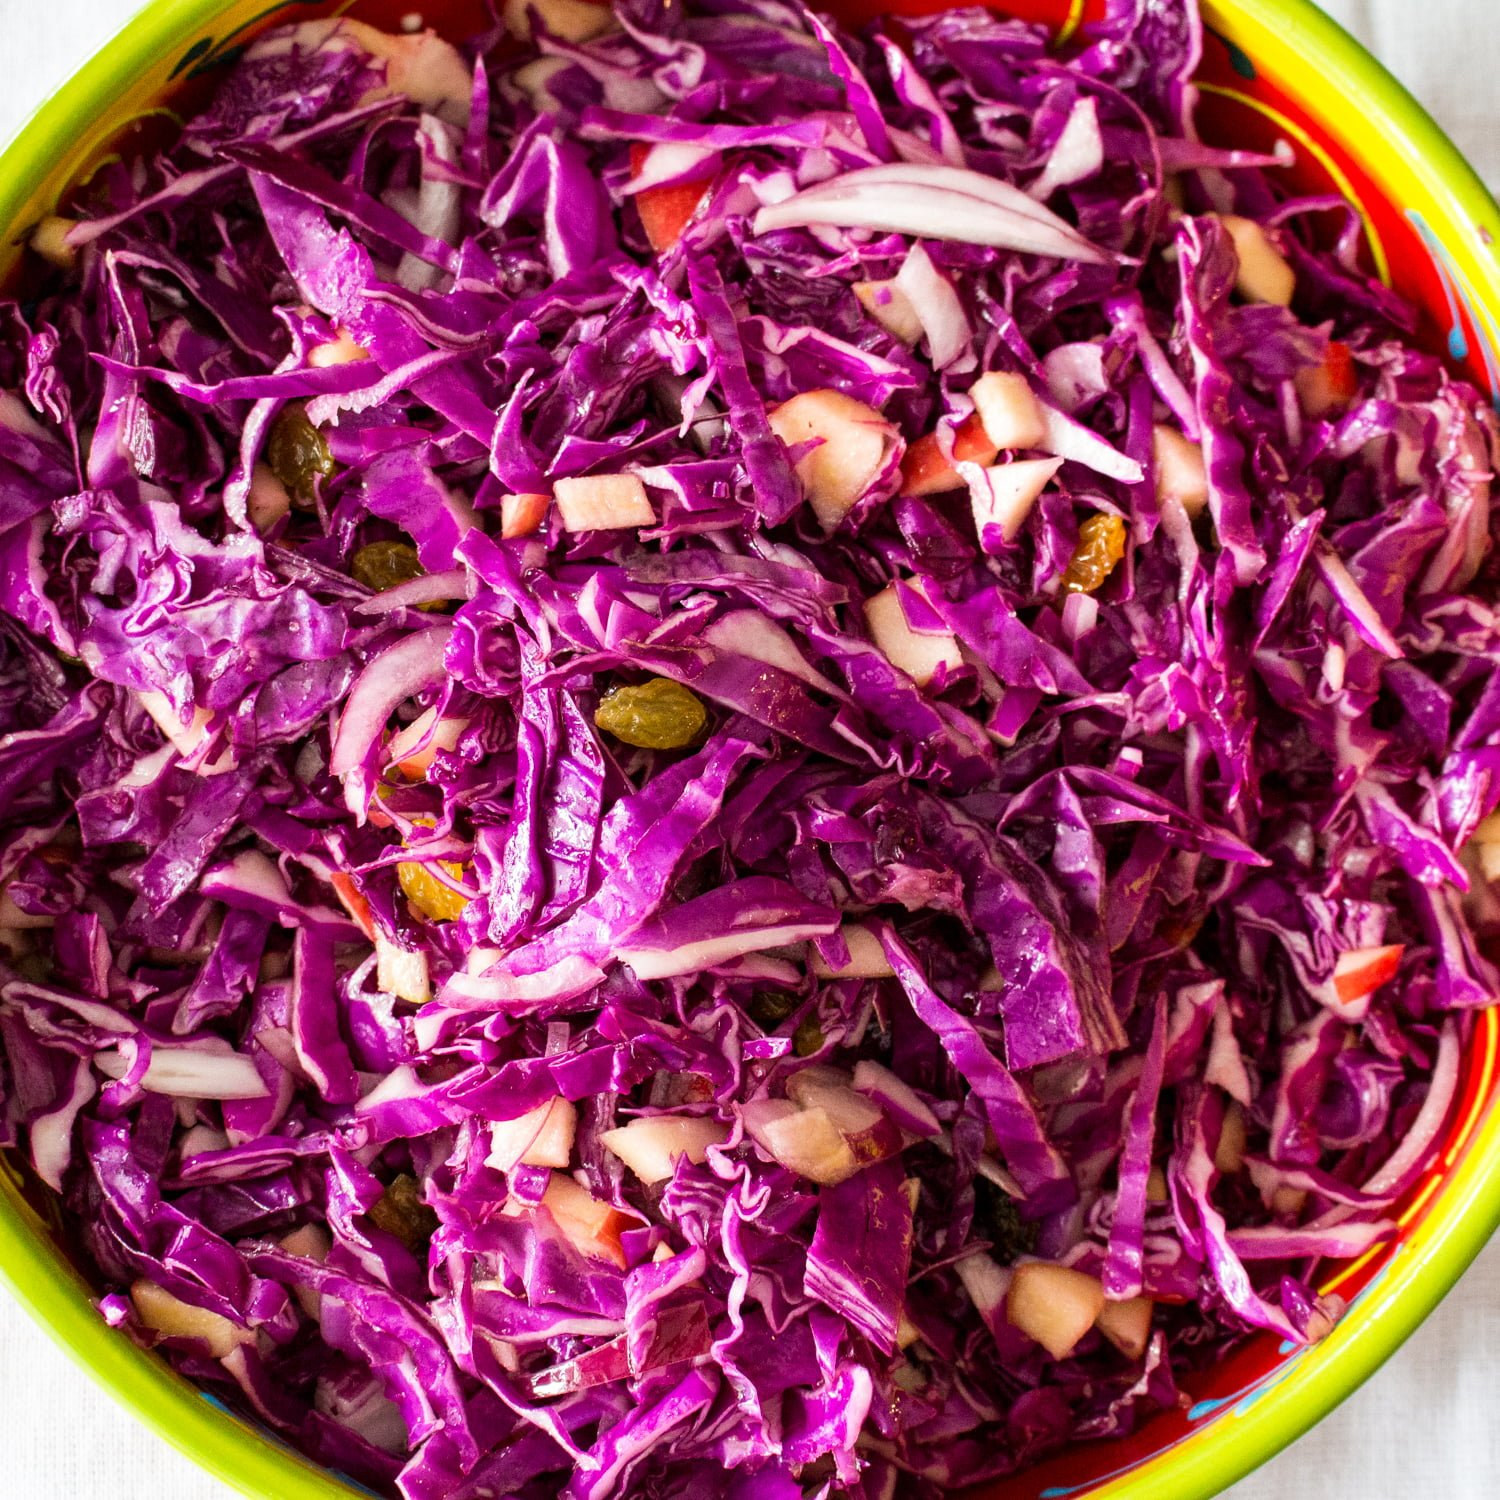 Apple Walnuts And Raisins Red Cabbage Salad11 1